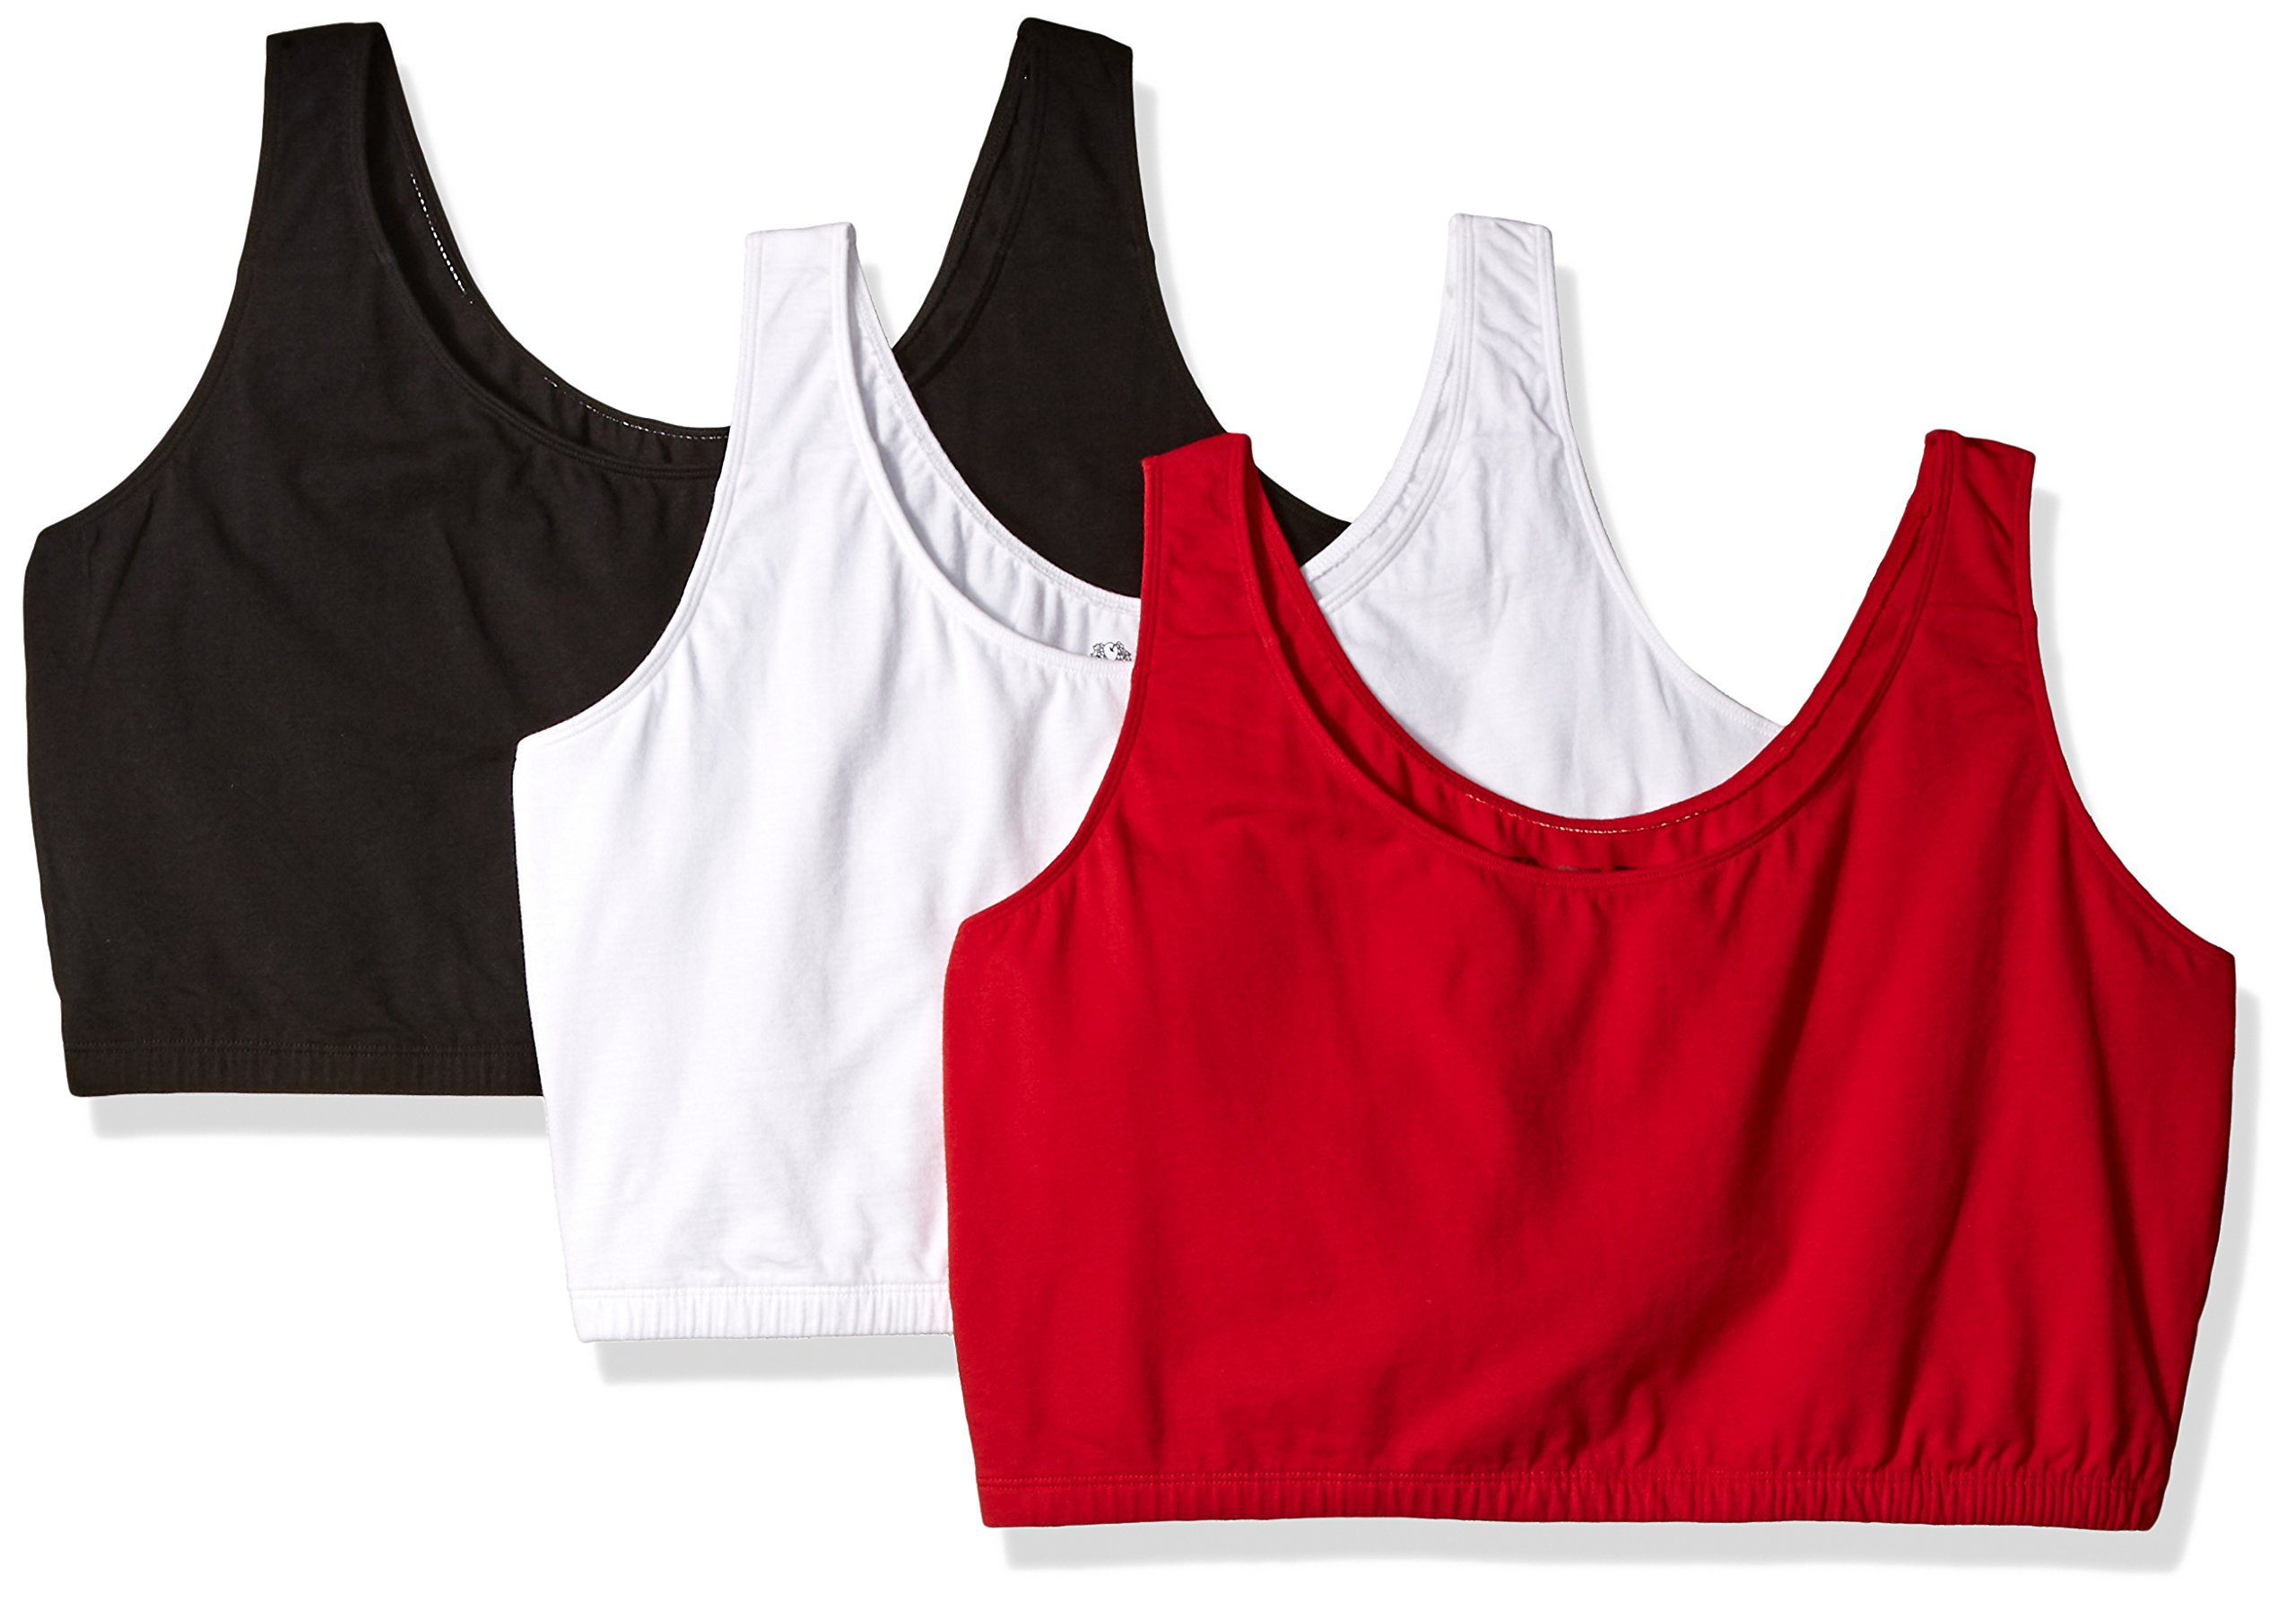 Fruit of the Loom Women's 3 PR Built-Up Sportsbra, Red Hot/White/Black, Size 44 by Fruit of the Loom